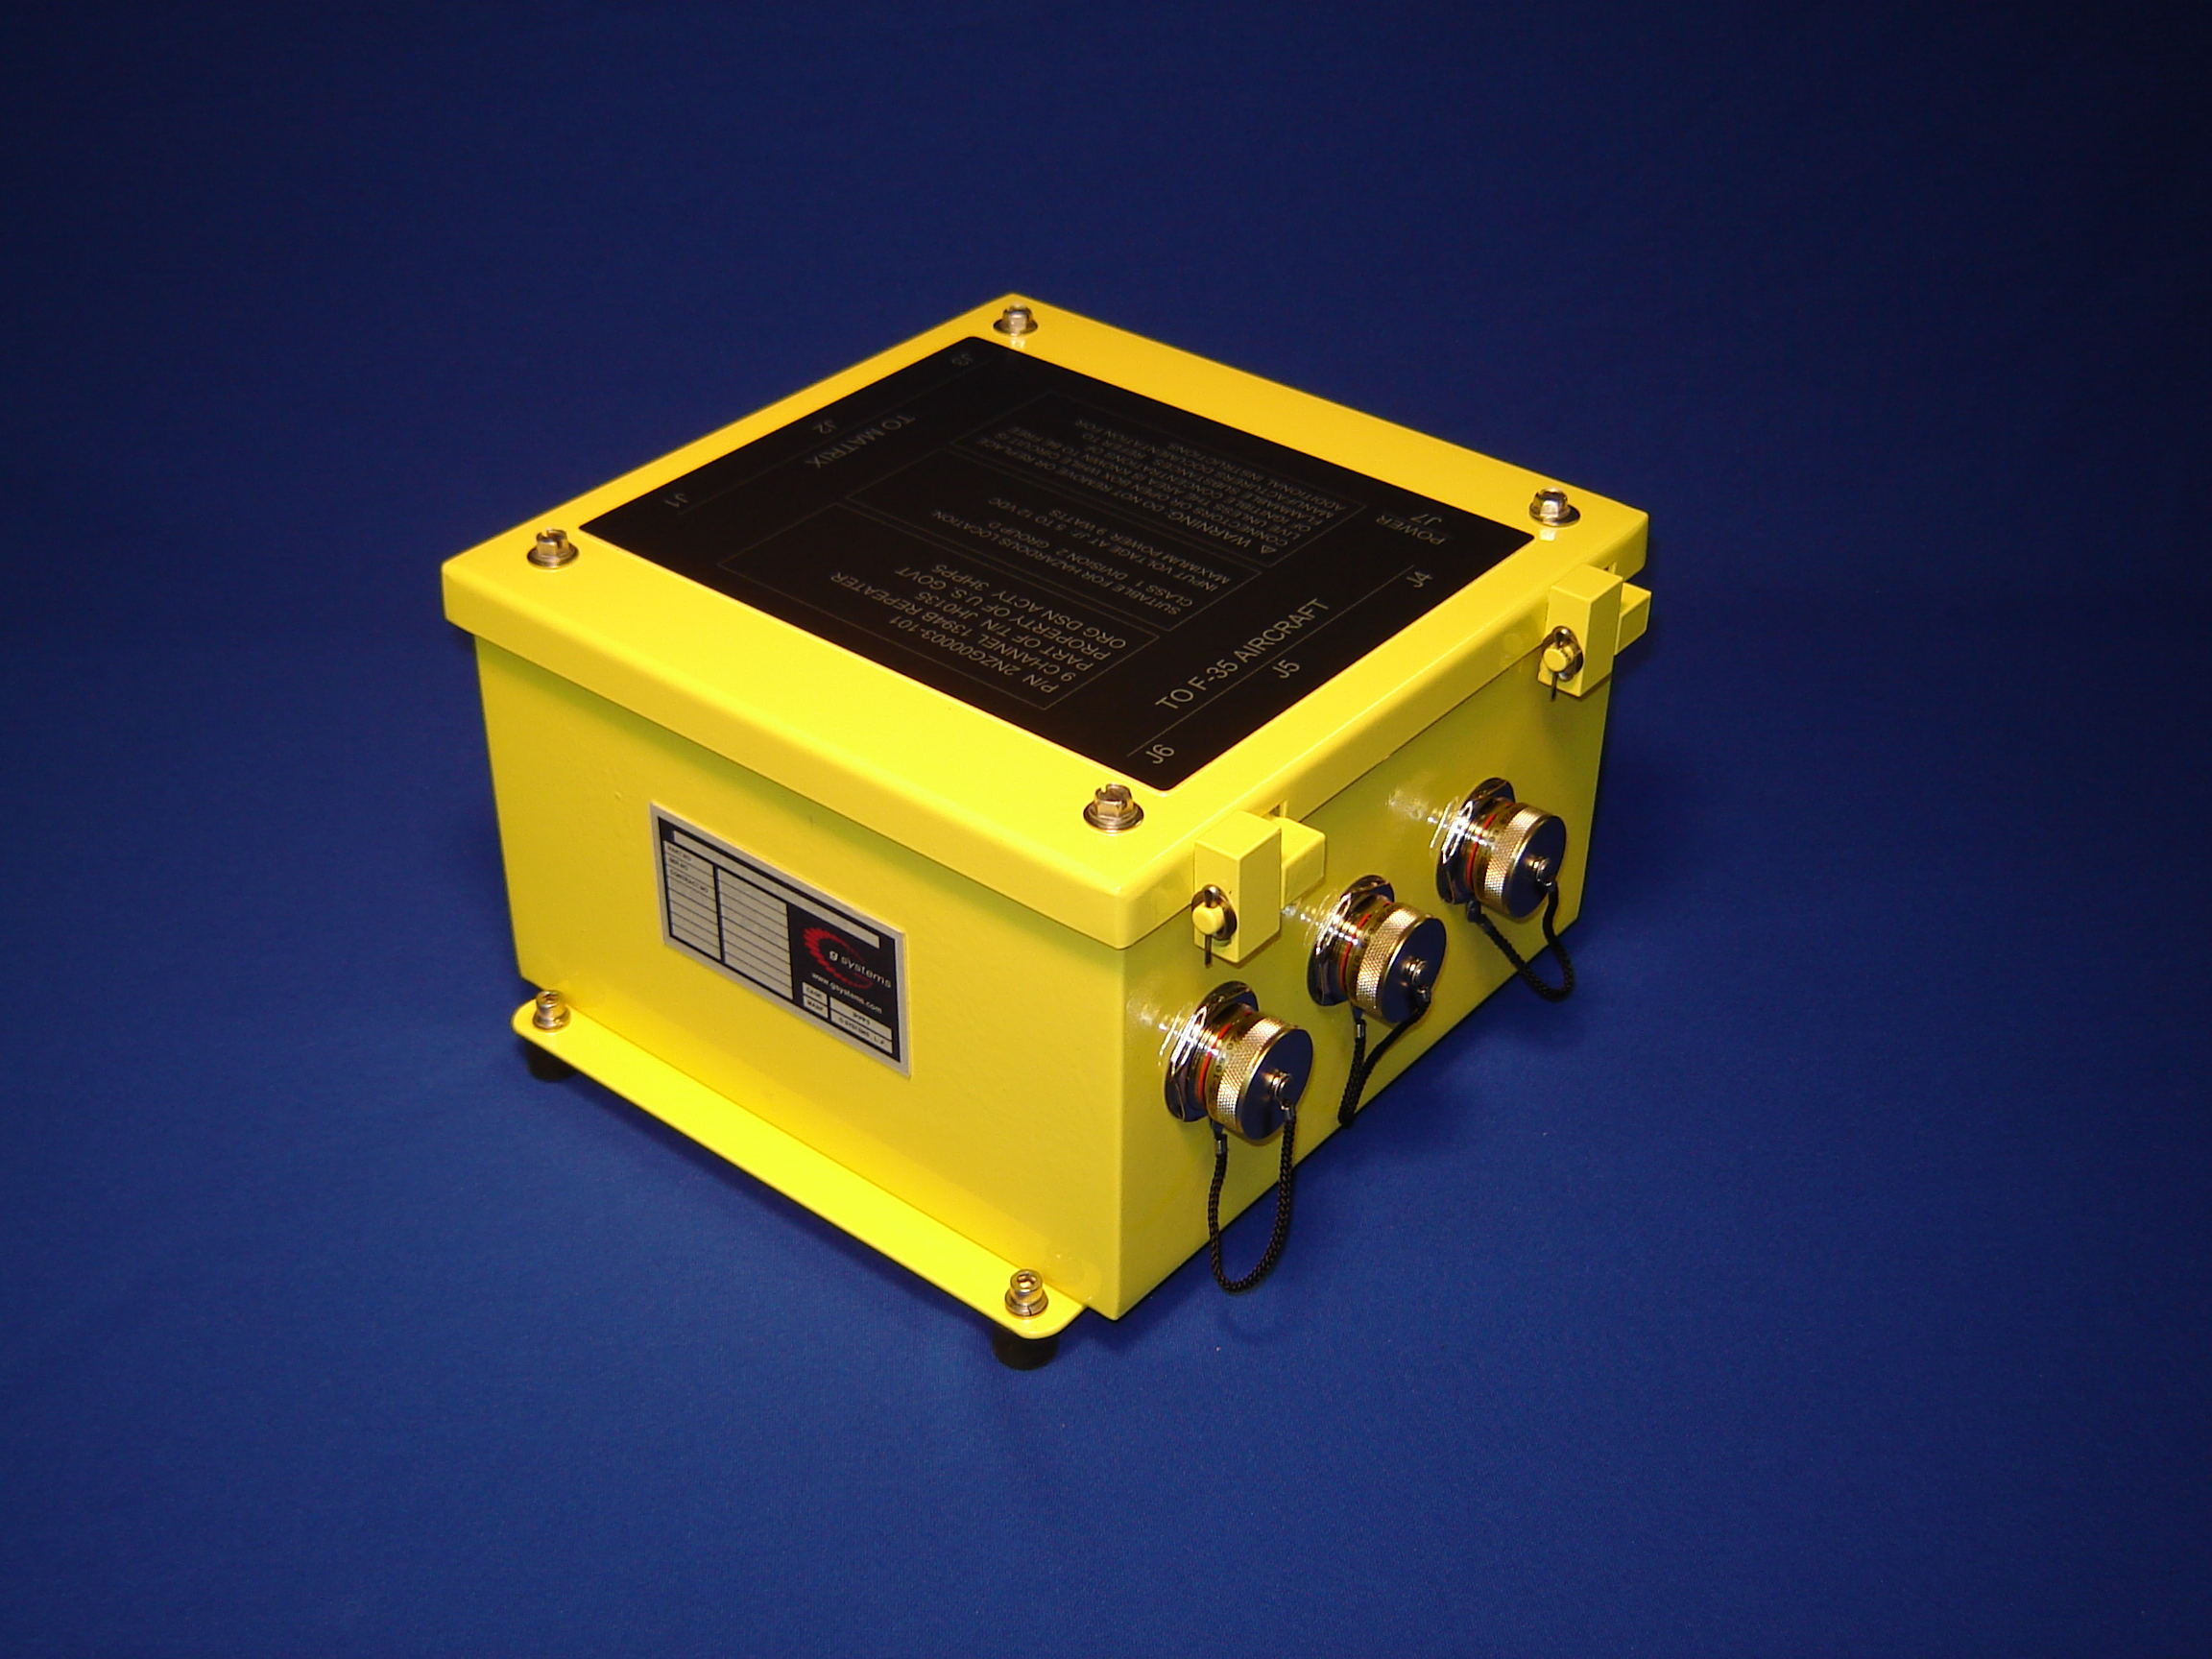 Rugged and Portable Field Test System